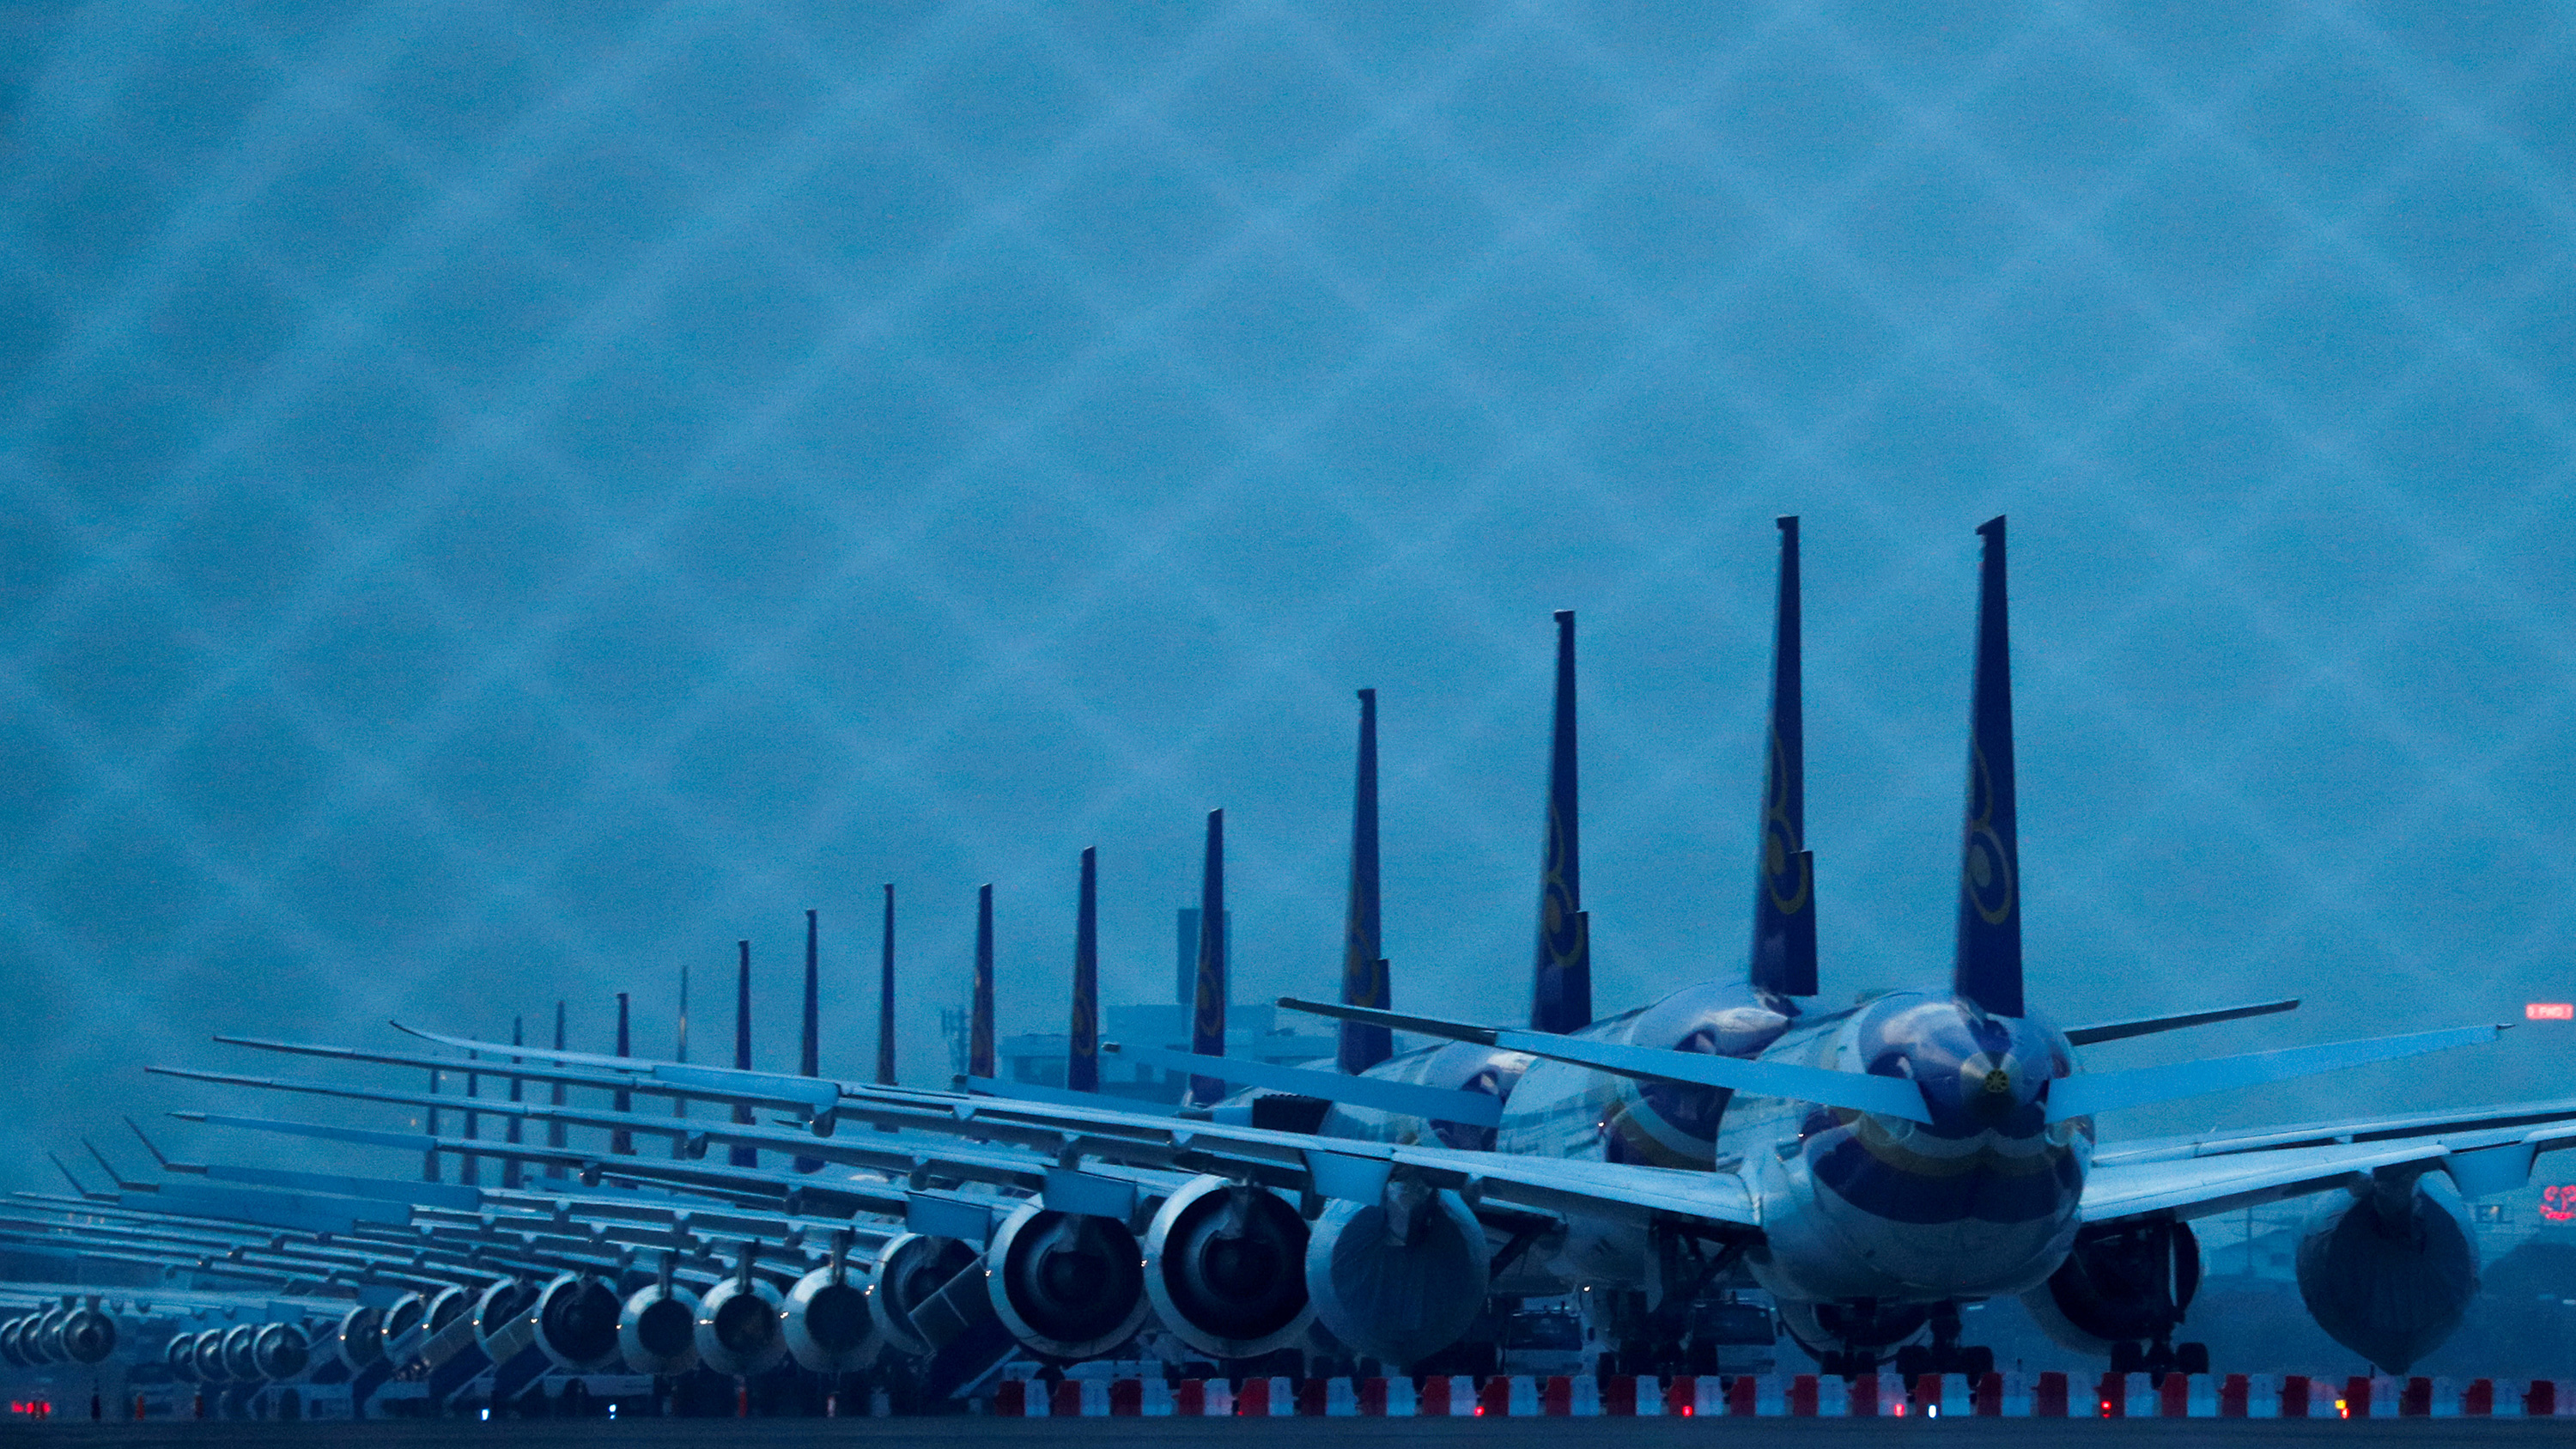 The photo shows a row of airplanes at dusk in a dark blue light.